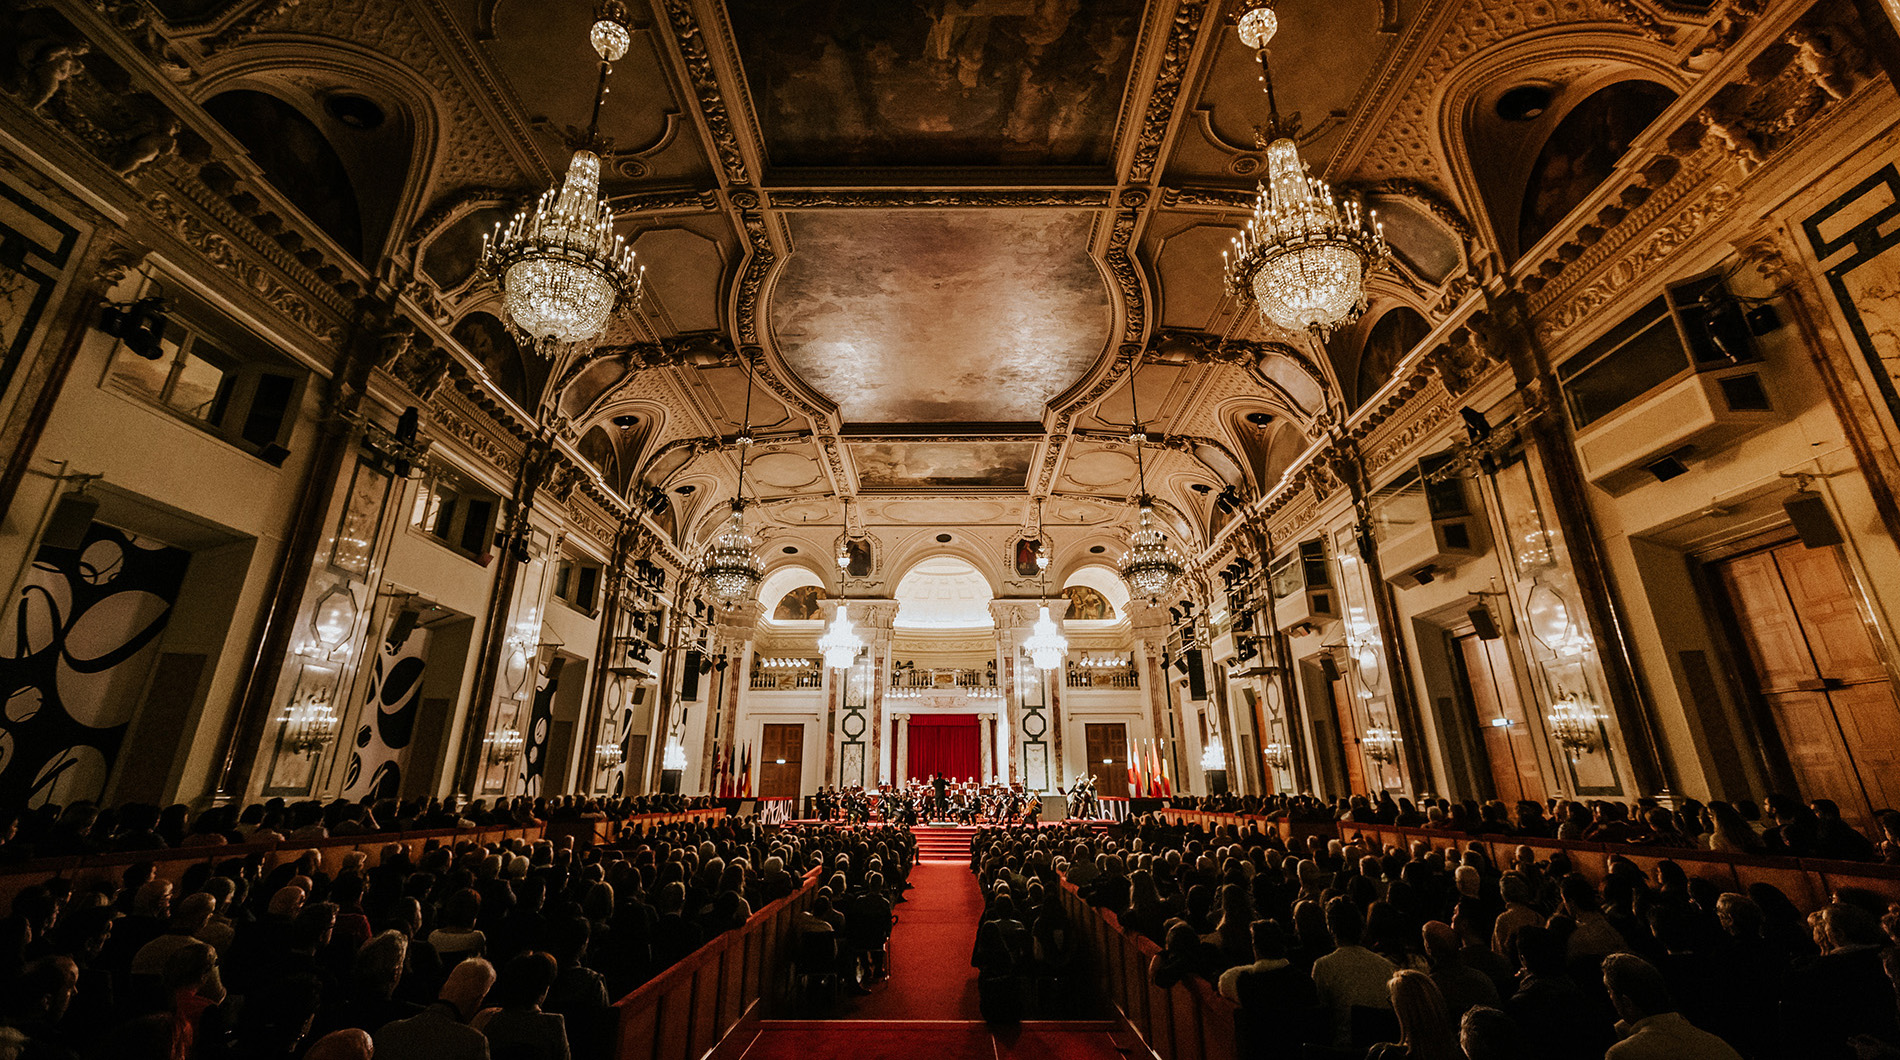 Festsaal at the Hofburg - Imperial Palace - Vienna at the Christmas concert of the Vienna Hofburg-Orchestra